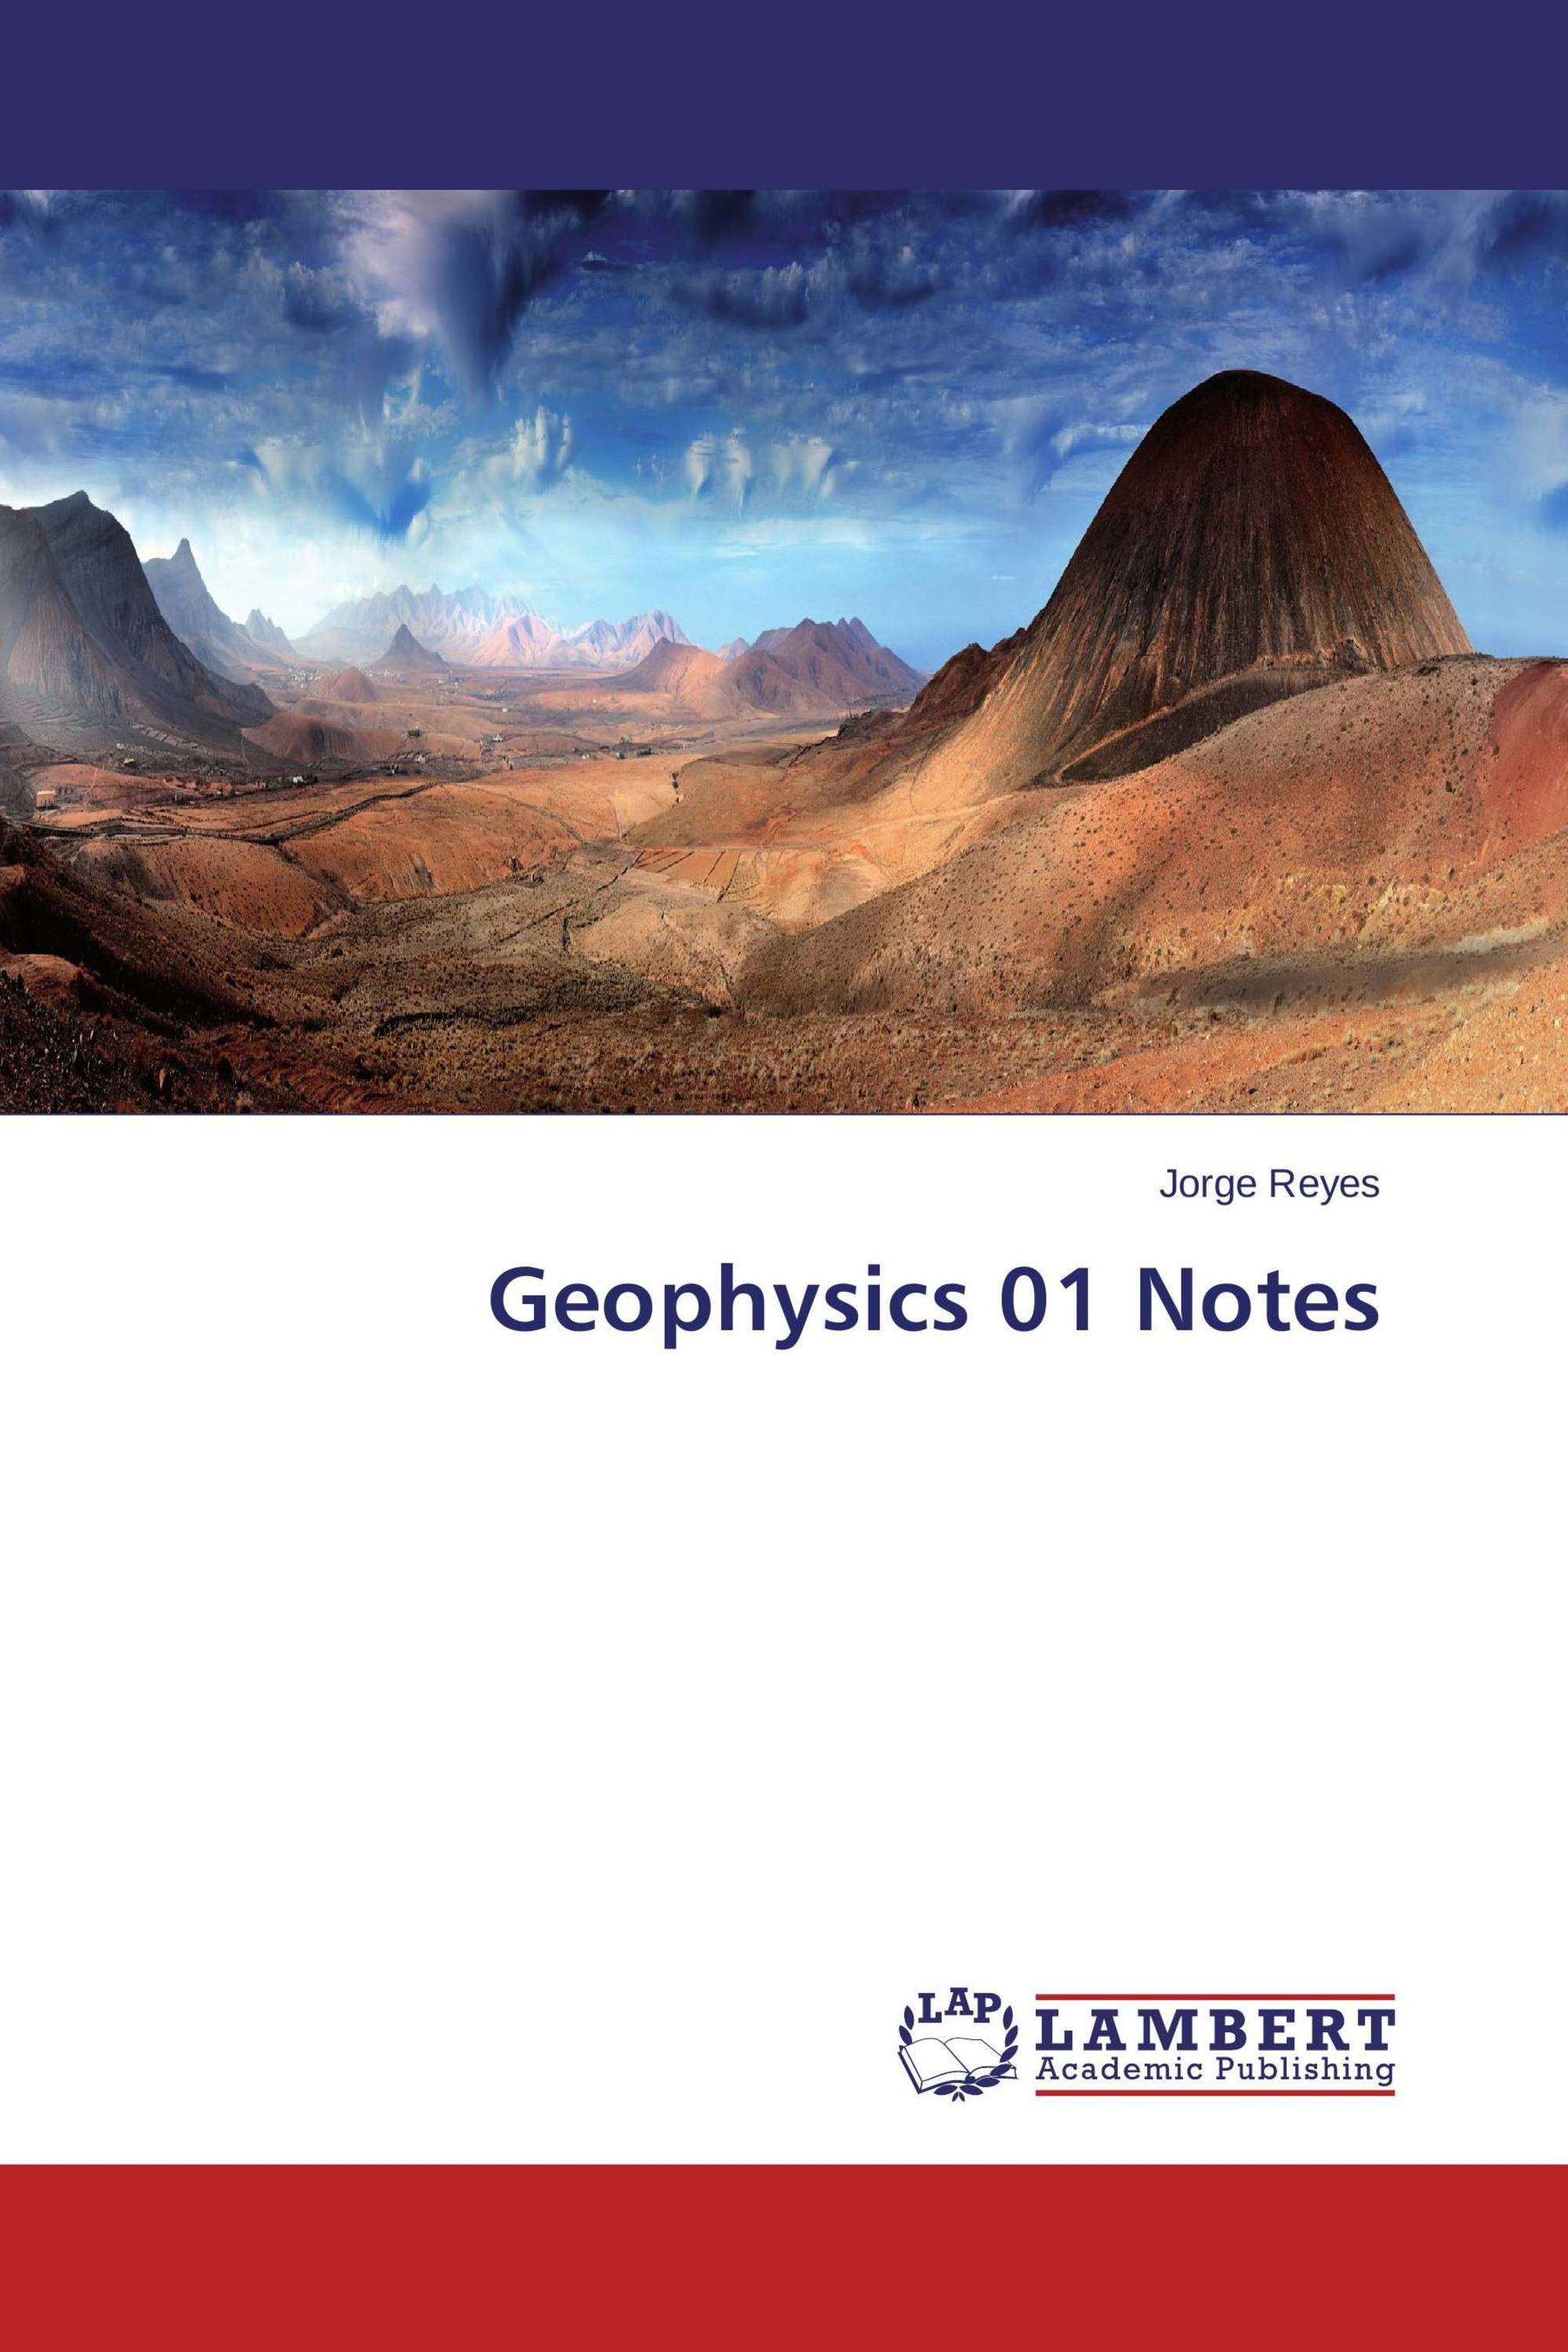 Geophysics 01 Notes